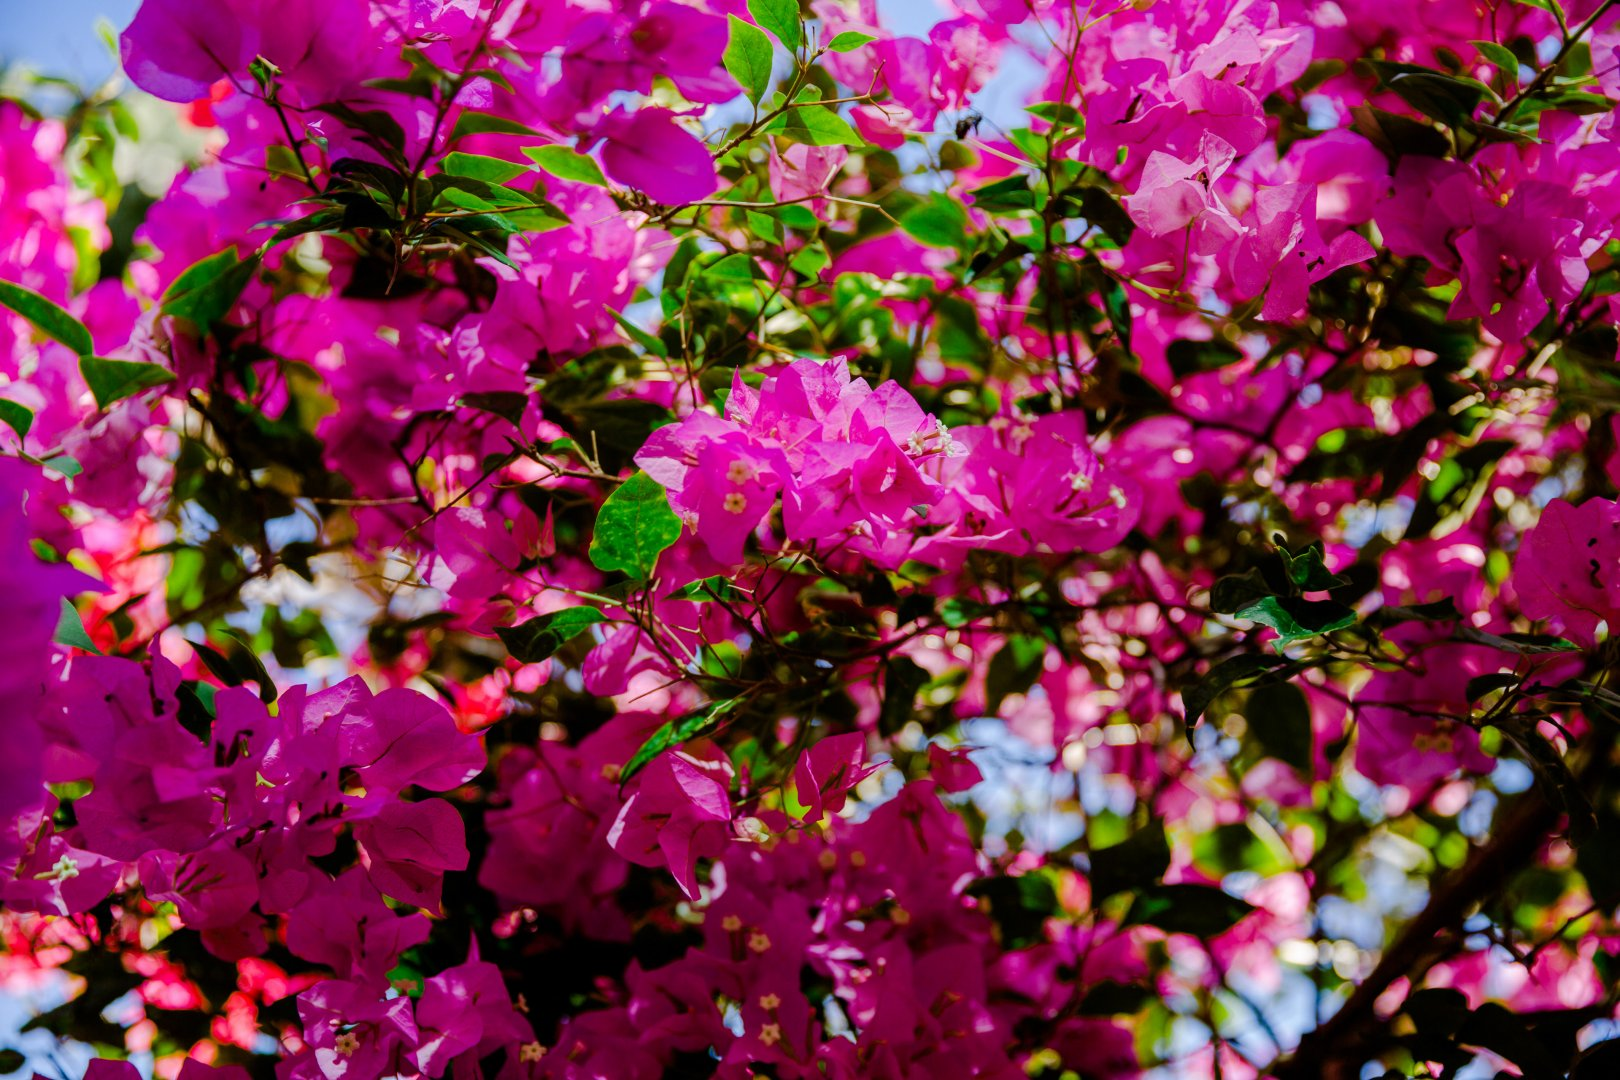 Flower Plant Pink Bougainvillea Petal Flowering plant Magenta Spring Tree Branch Annual plant Shrub Groundcover Loosestrife and pomegranate family Blossom Dianthus Pink family Wildflower Four o'clock family Rhododendron Perennial plant